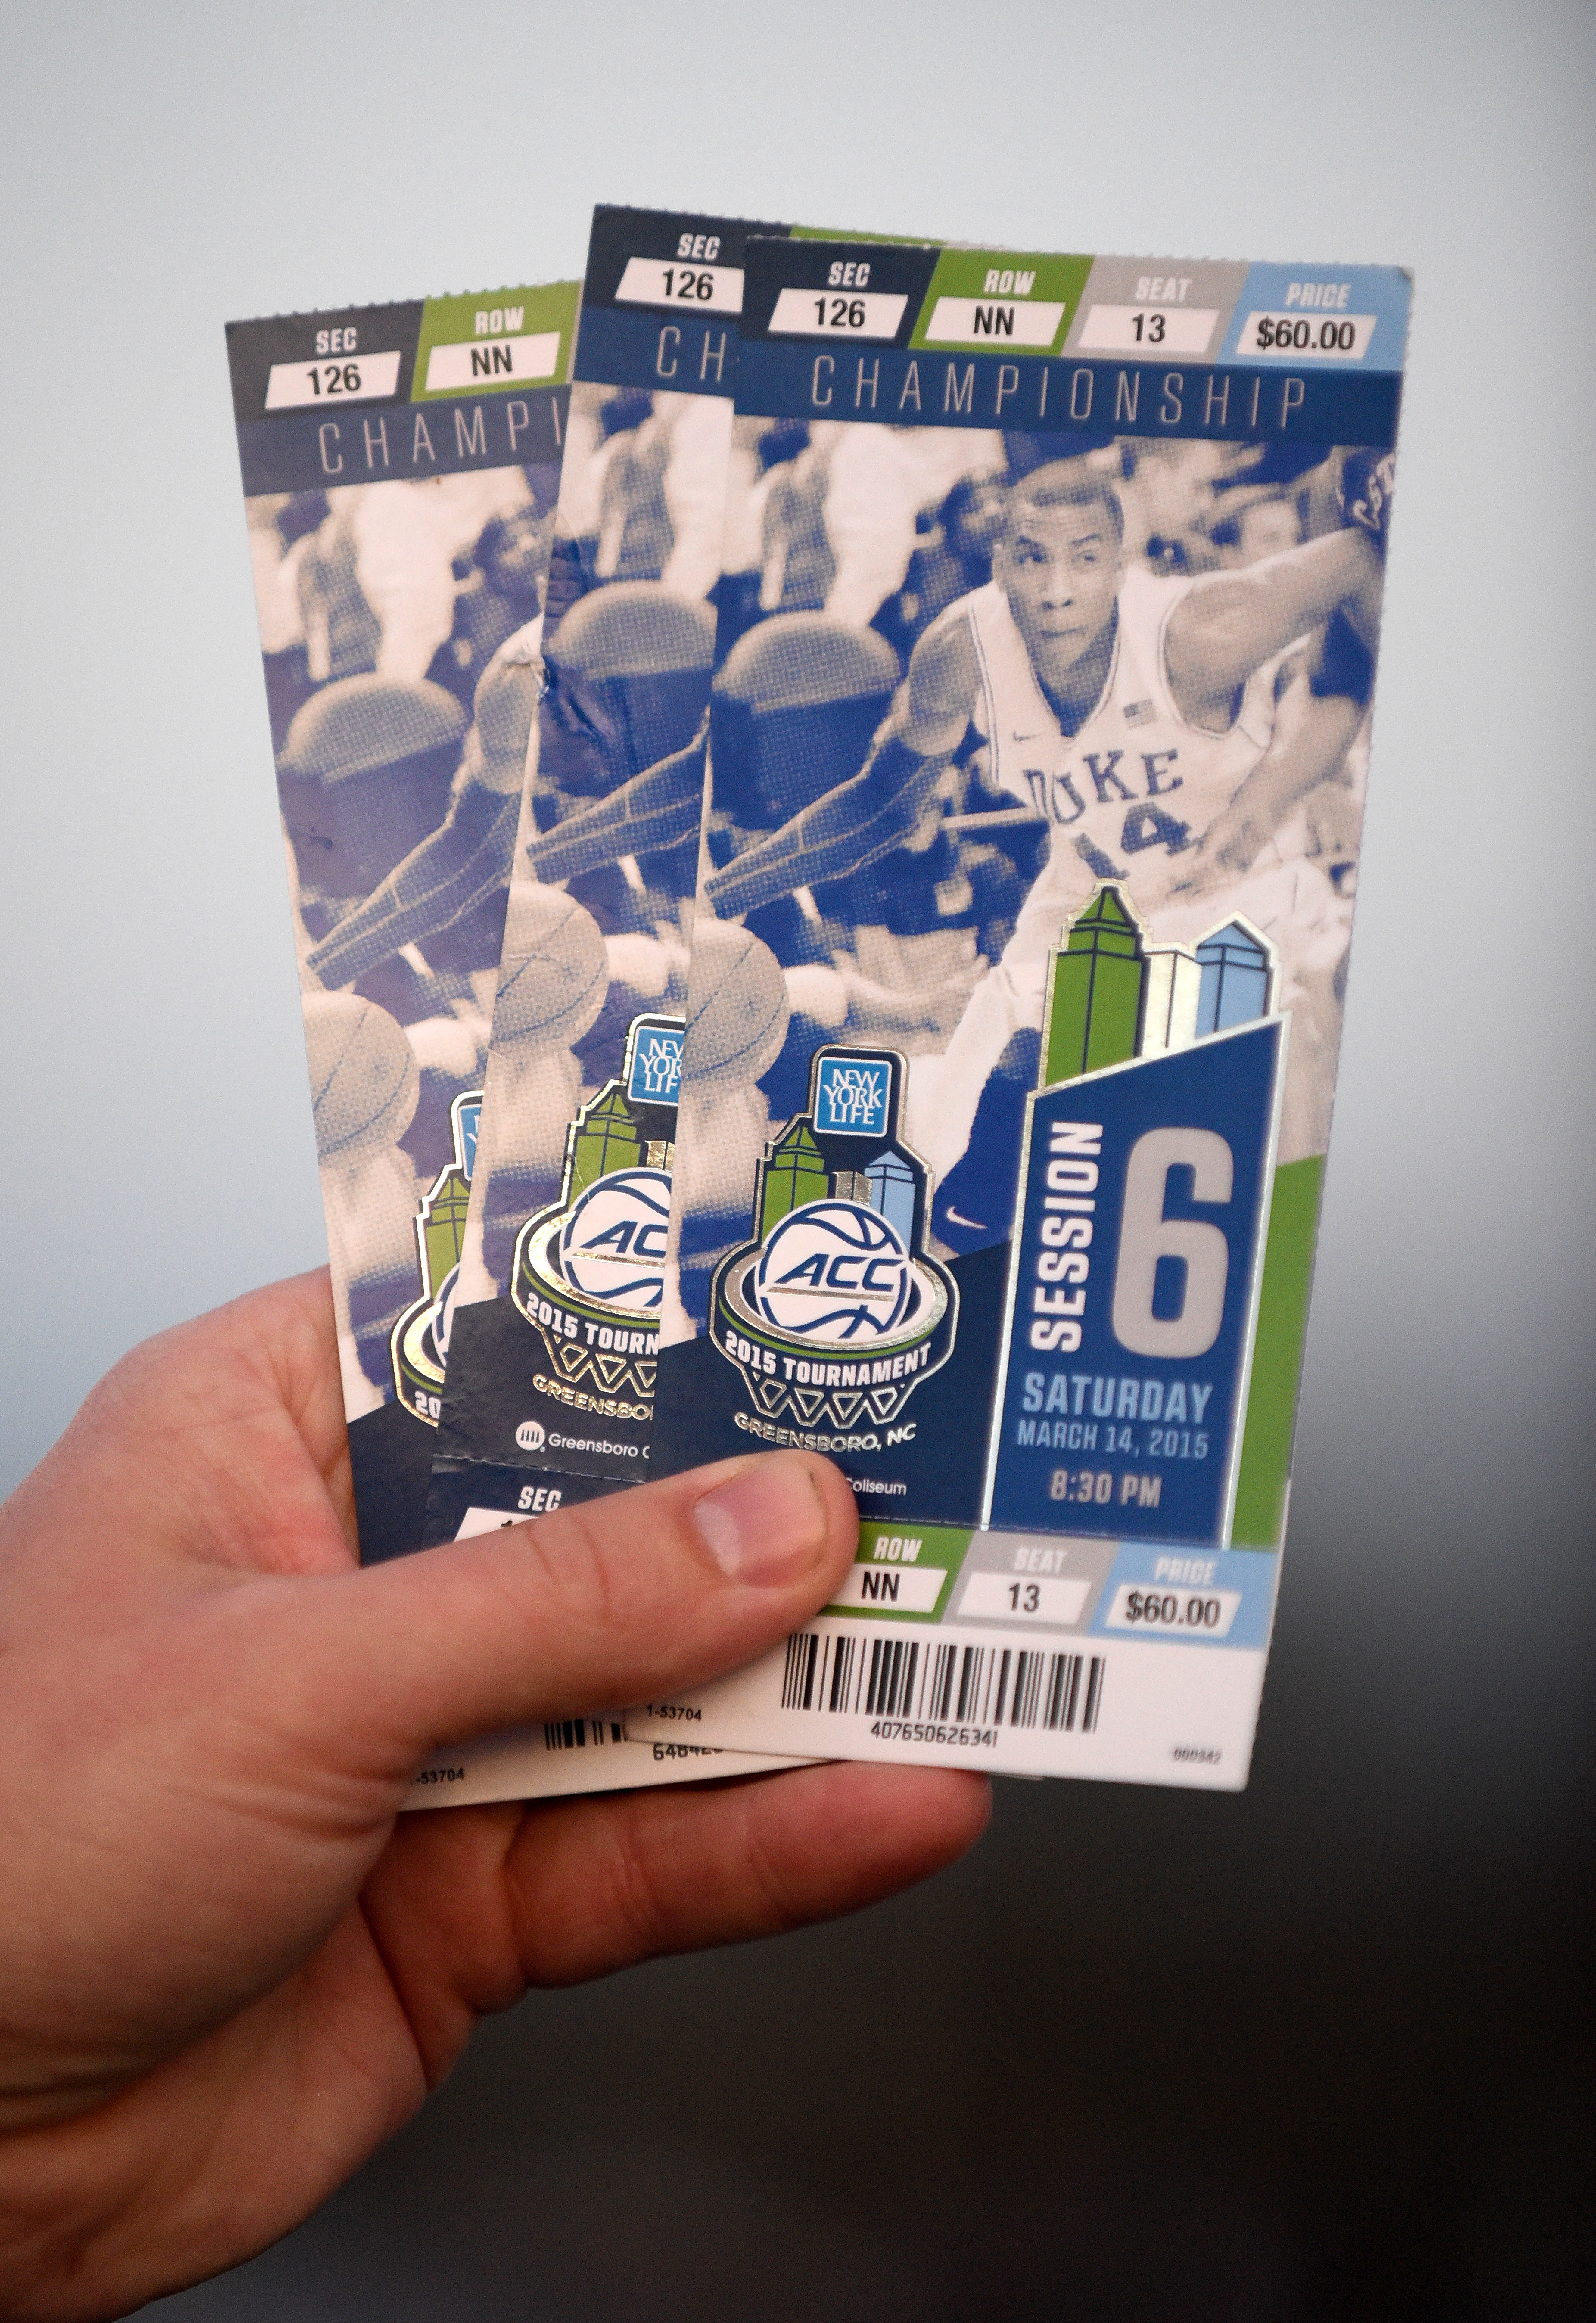 Tickets for the championship game with former Duke Blue Devil player Rasheed Sulaimon ahead of the game betweeen the North Carolina Tar Heels and Notre Dame Fighting Irish for the 2015 ACC Basketball Tournament Championship game at Greensboro Coliseum on March 14, 2015 in Greensboro, North Carolina.